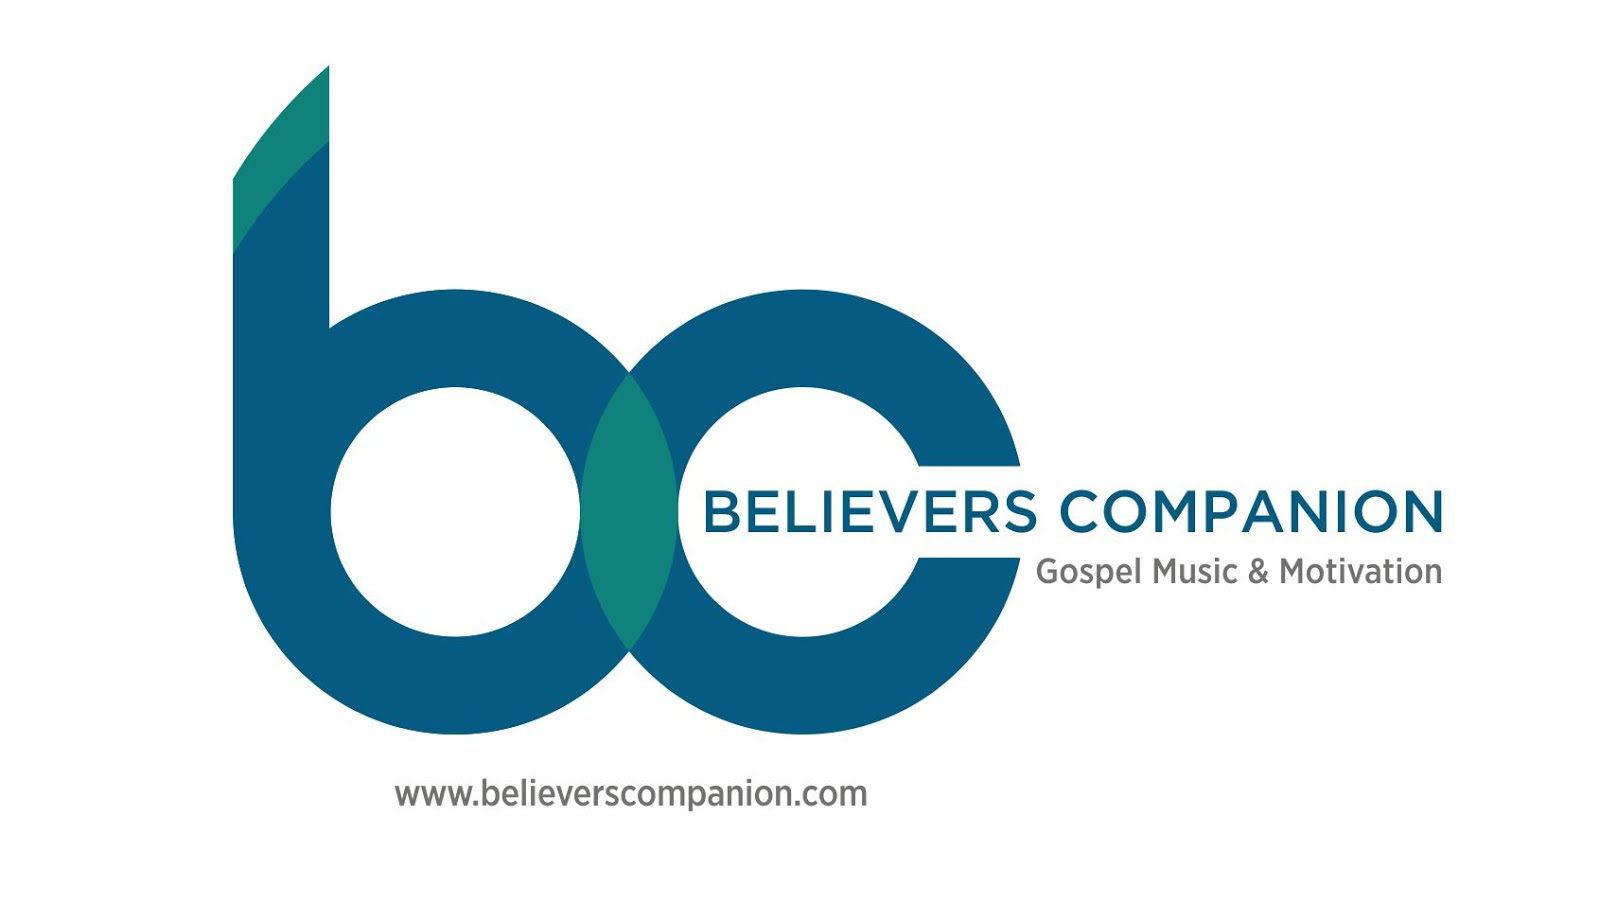 Believers Companion